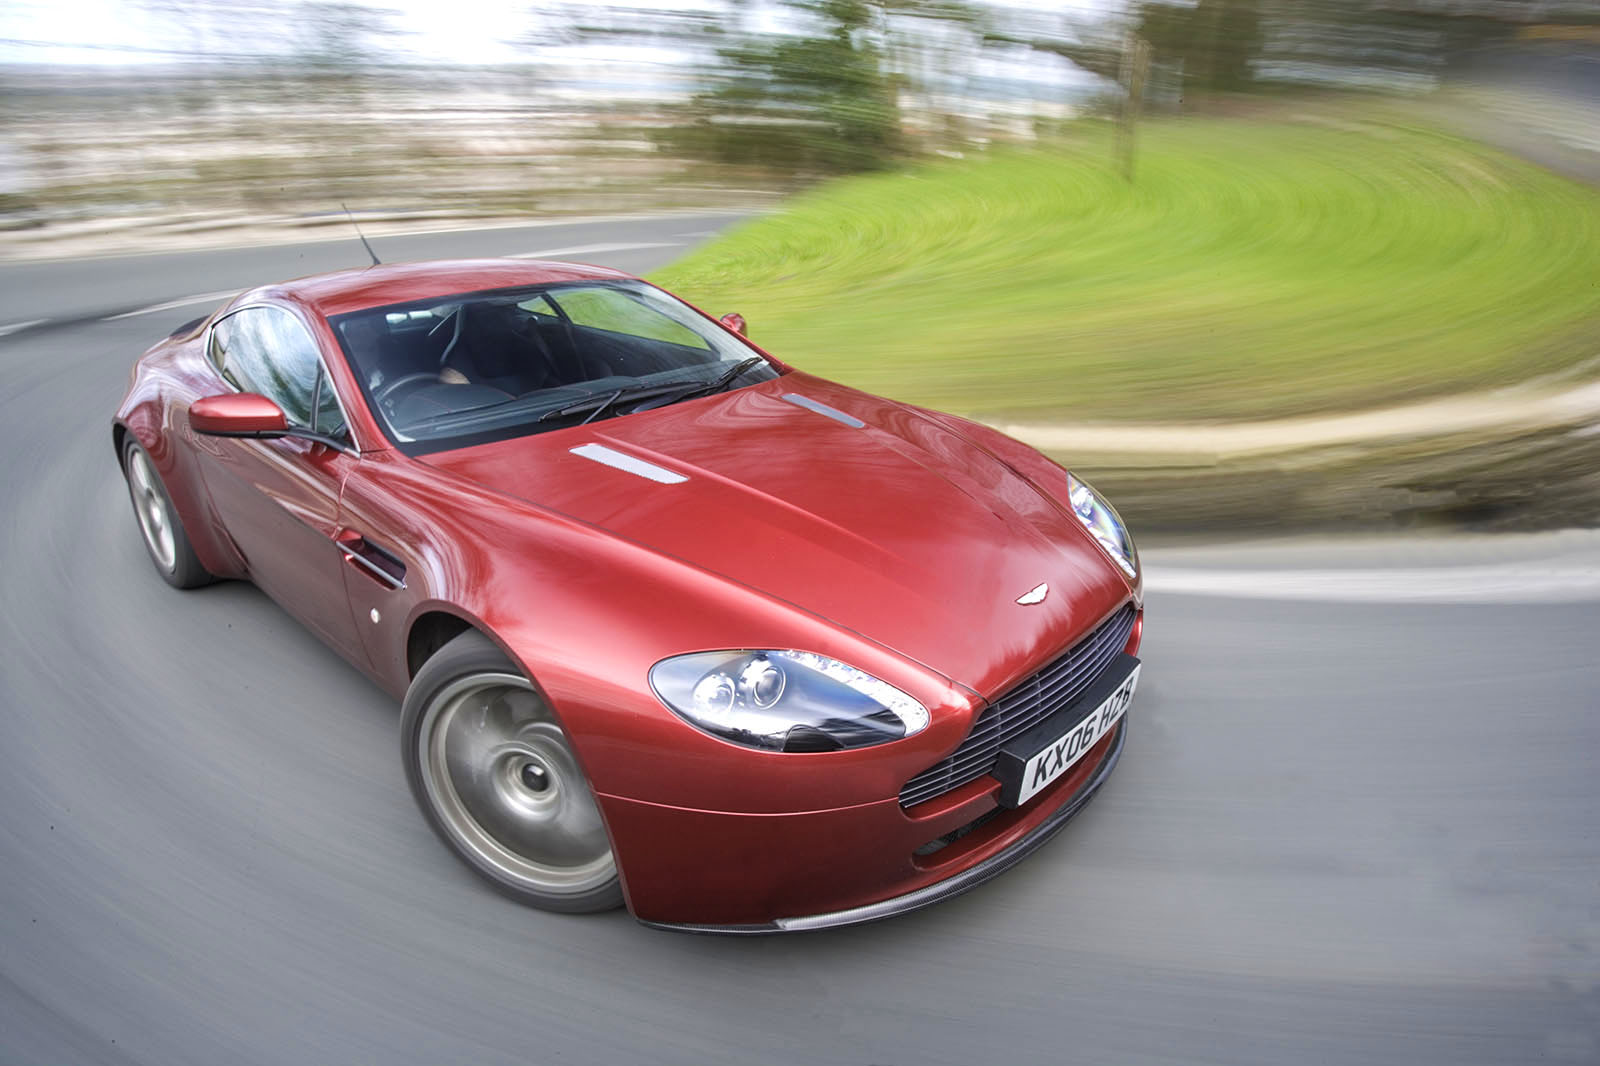 Used Car Buying Guide Aston Martin Vantage Autocar